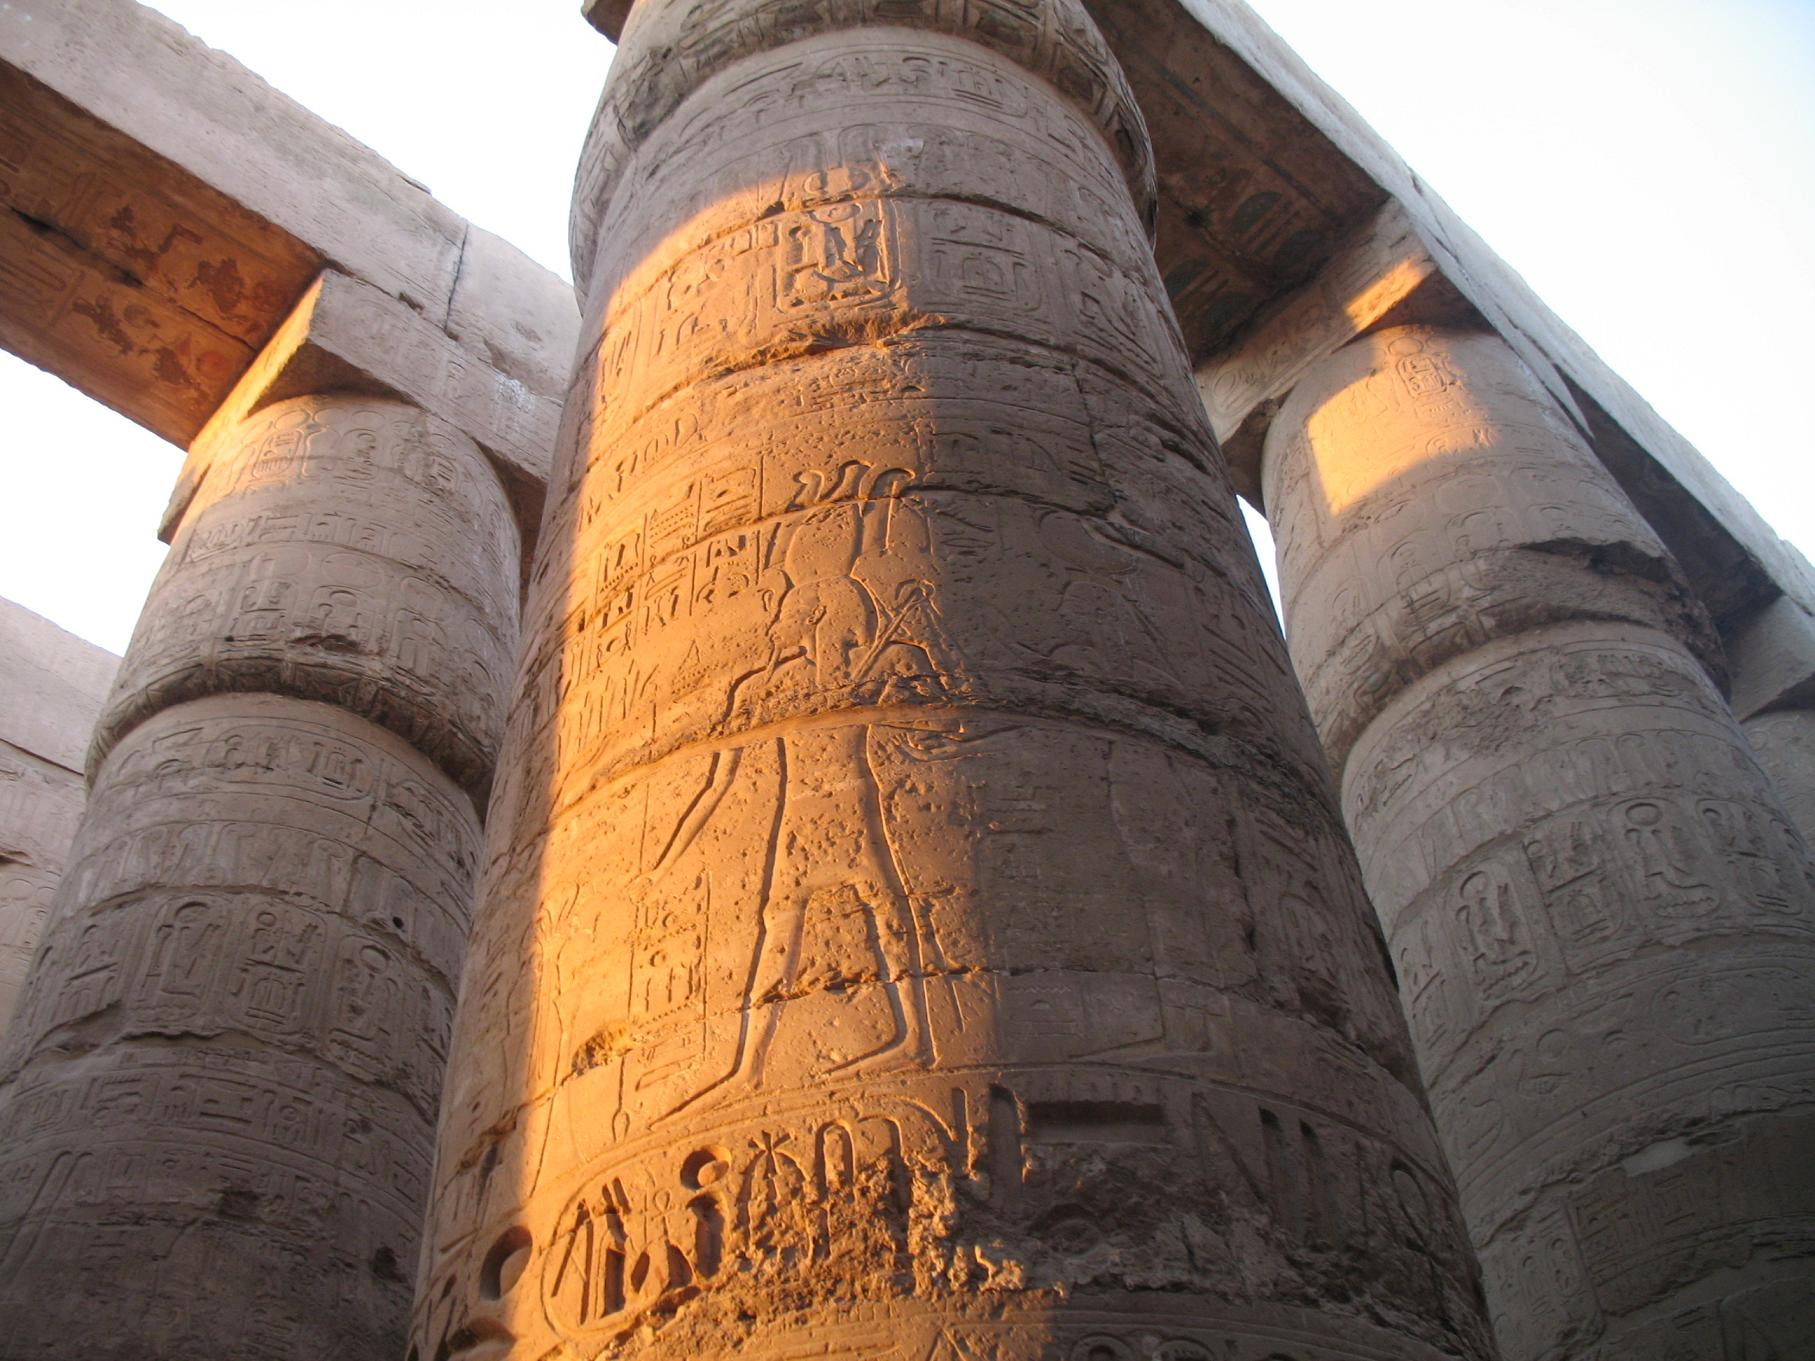 Largest temple in the world - Karnak Temple, Luxor, Egypt